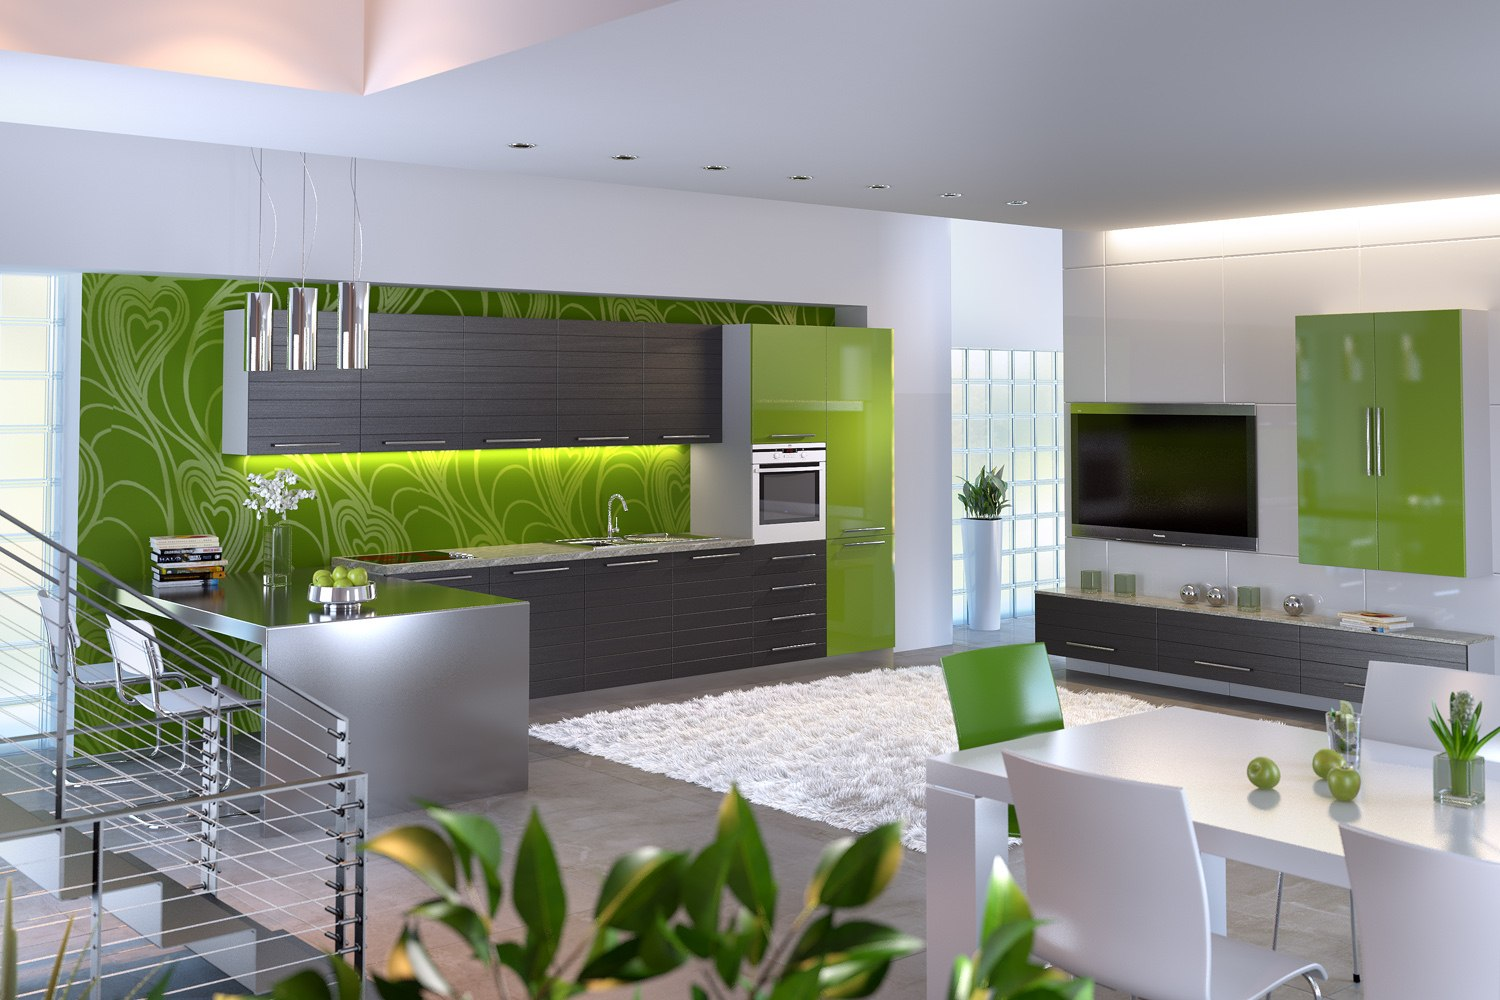 Green intrusion of color into white and gray combination for modern kitchen